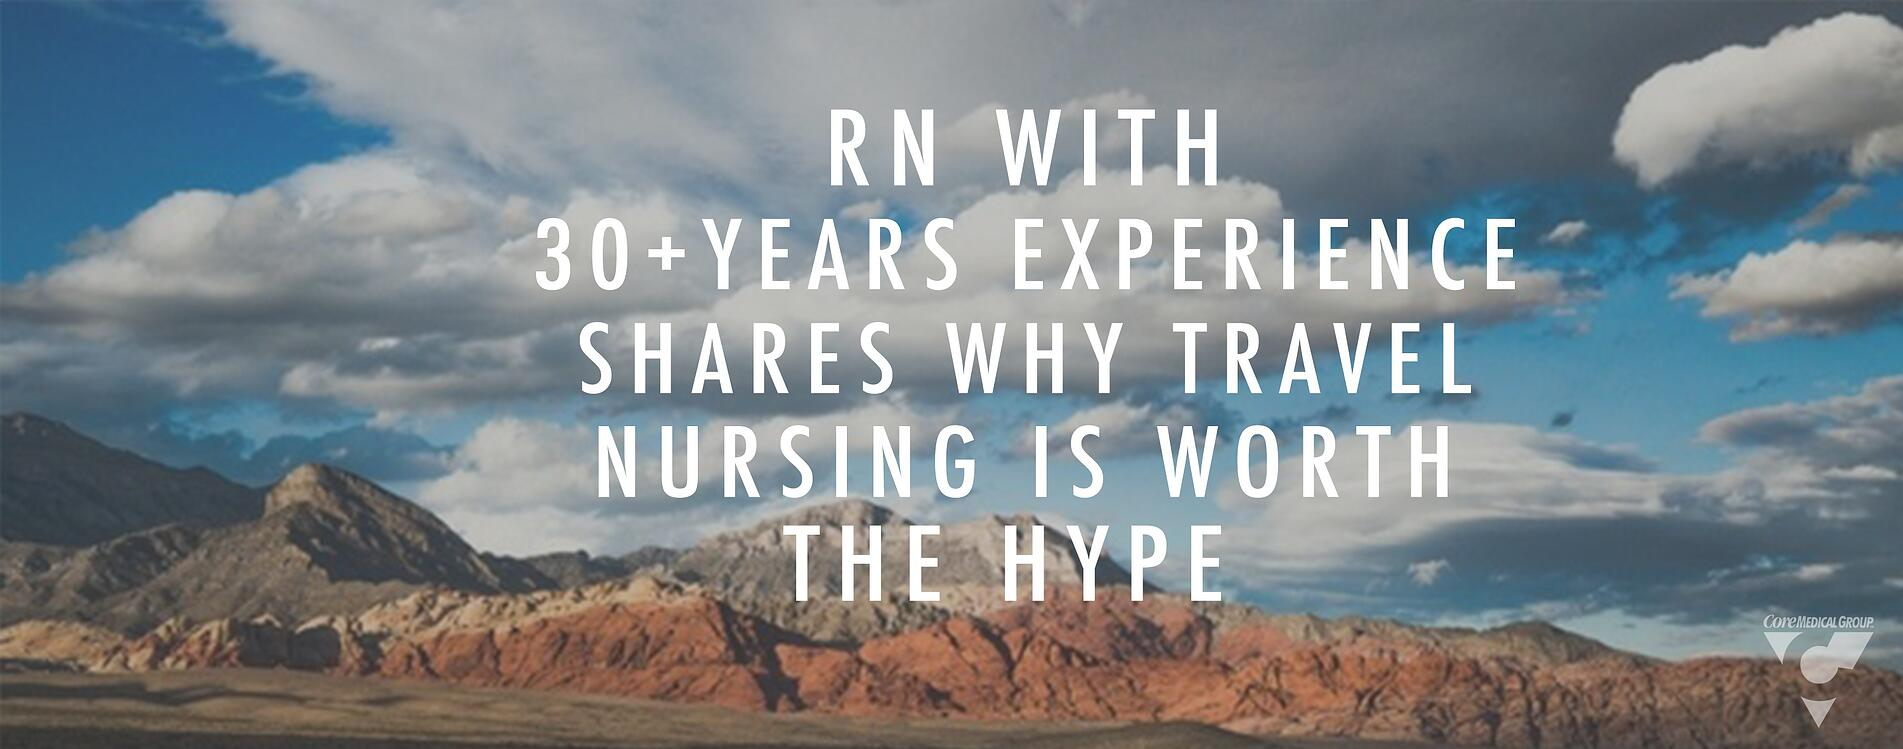 RN with 30 Years Experience Shares Why Travel Nursing Is Worth The Hype